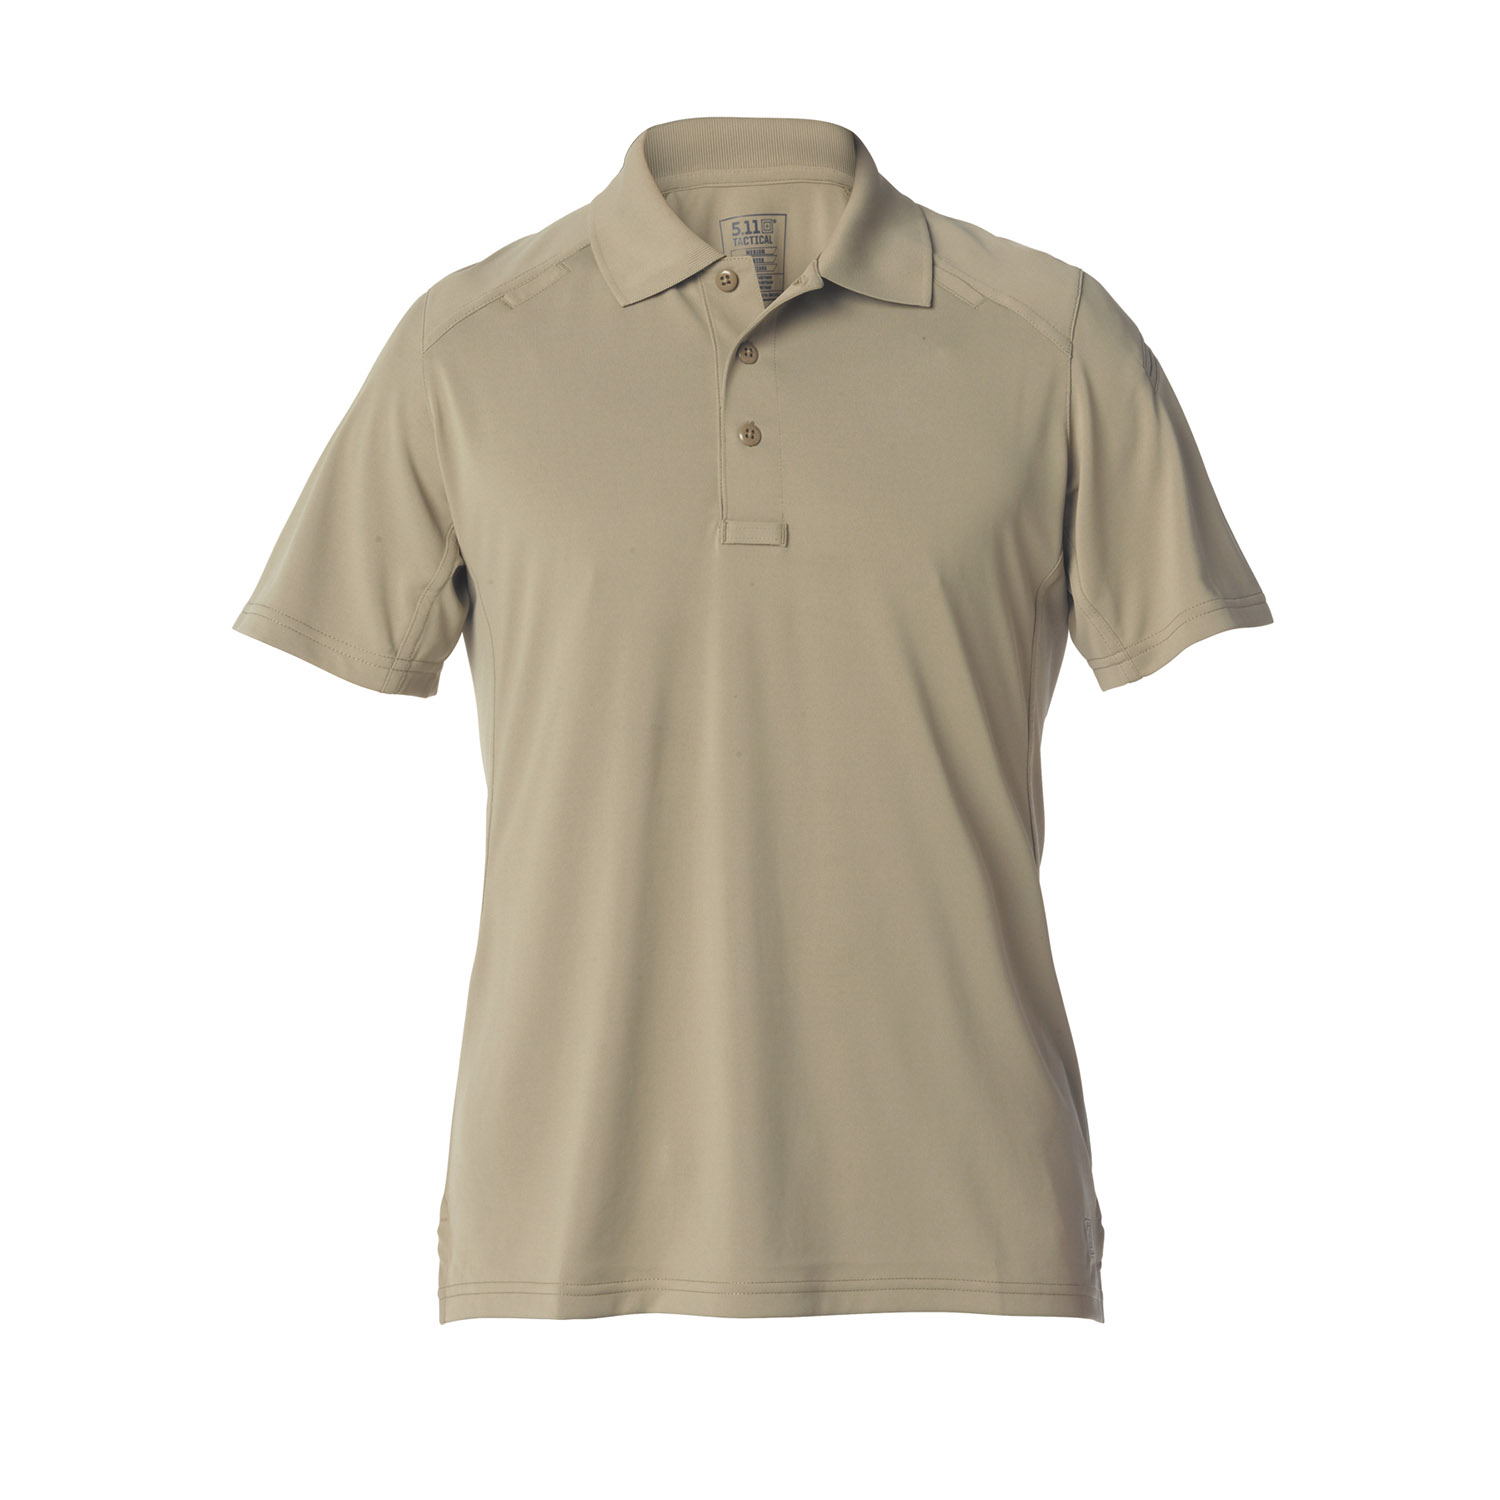 5.11 Tactical Helios Women's Short Sleeve Polo